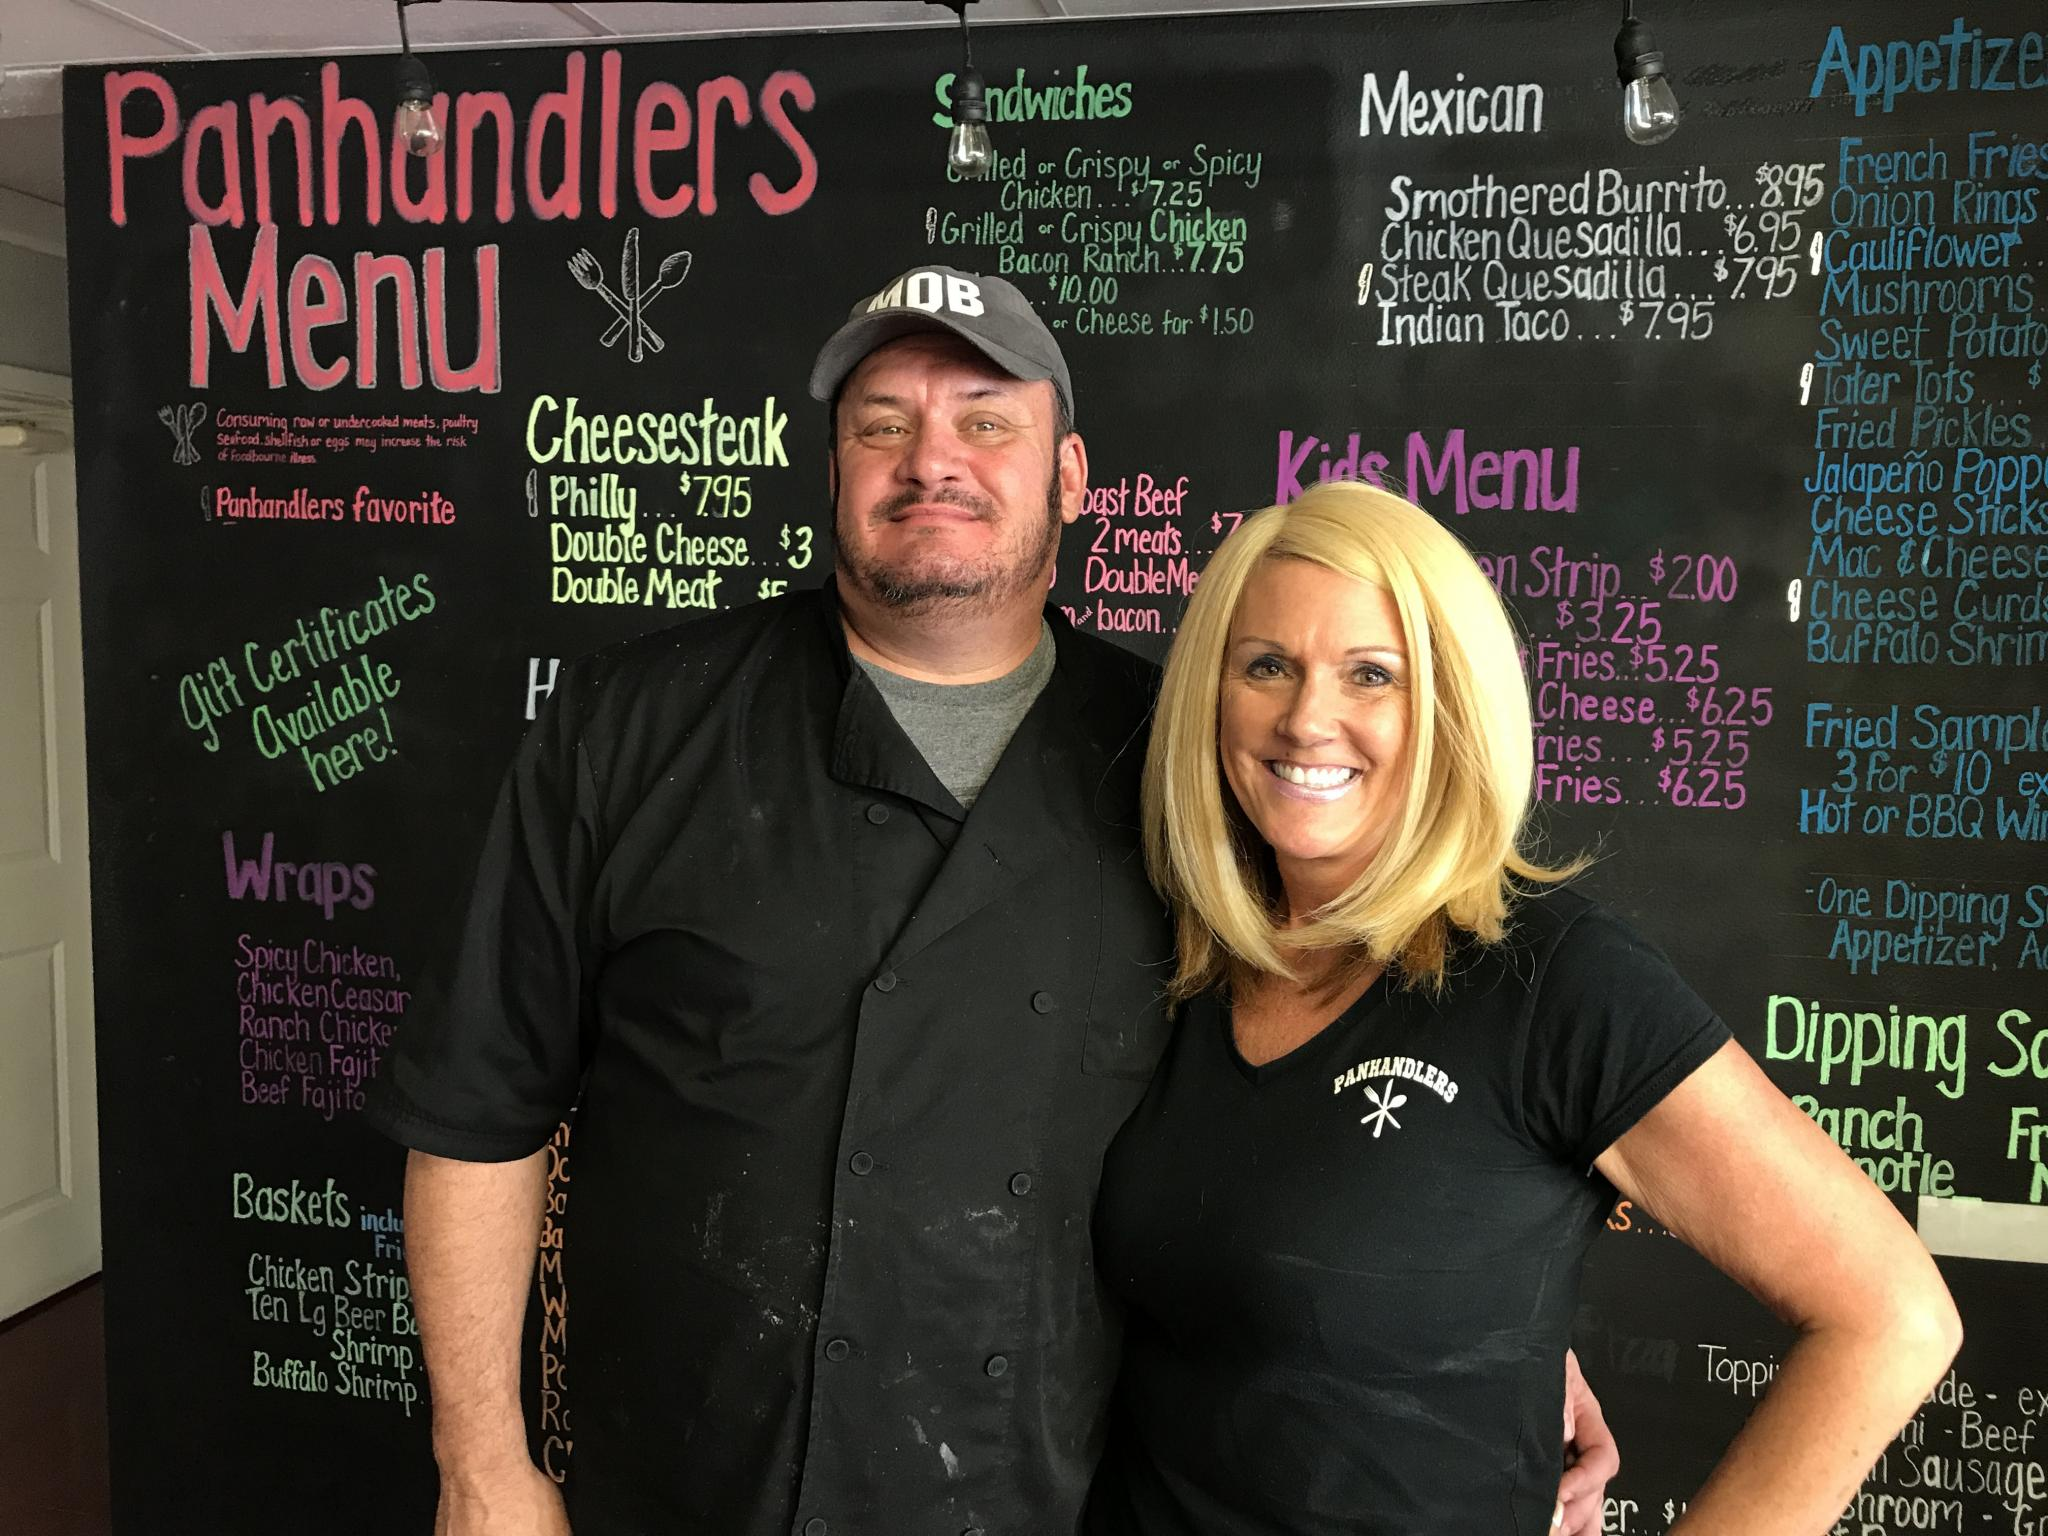 NLT | Becky Uehling<strong>John and Lori Thomason stand in front of their menu board at their restaurant Panhandlers in Oshkosh, Neb. </strong>